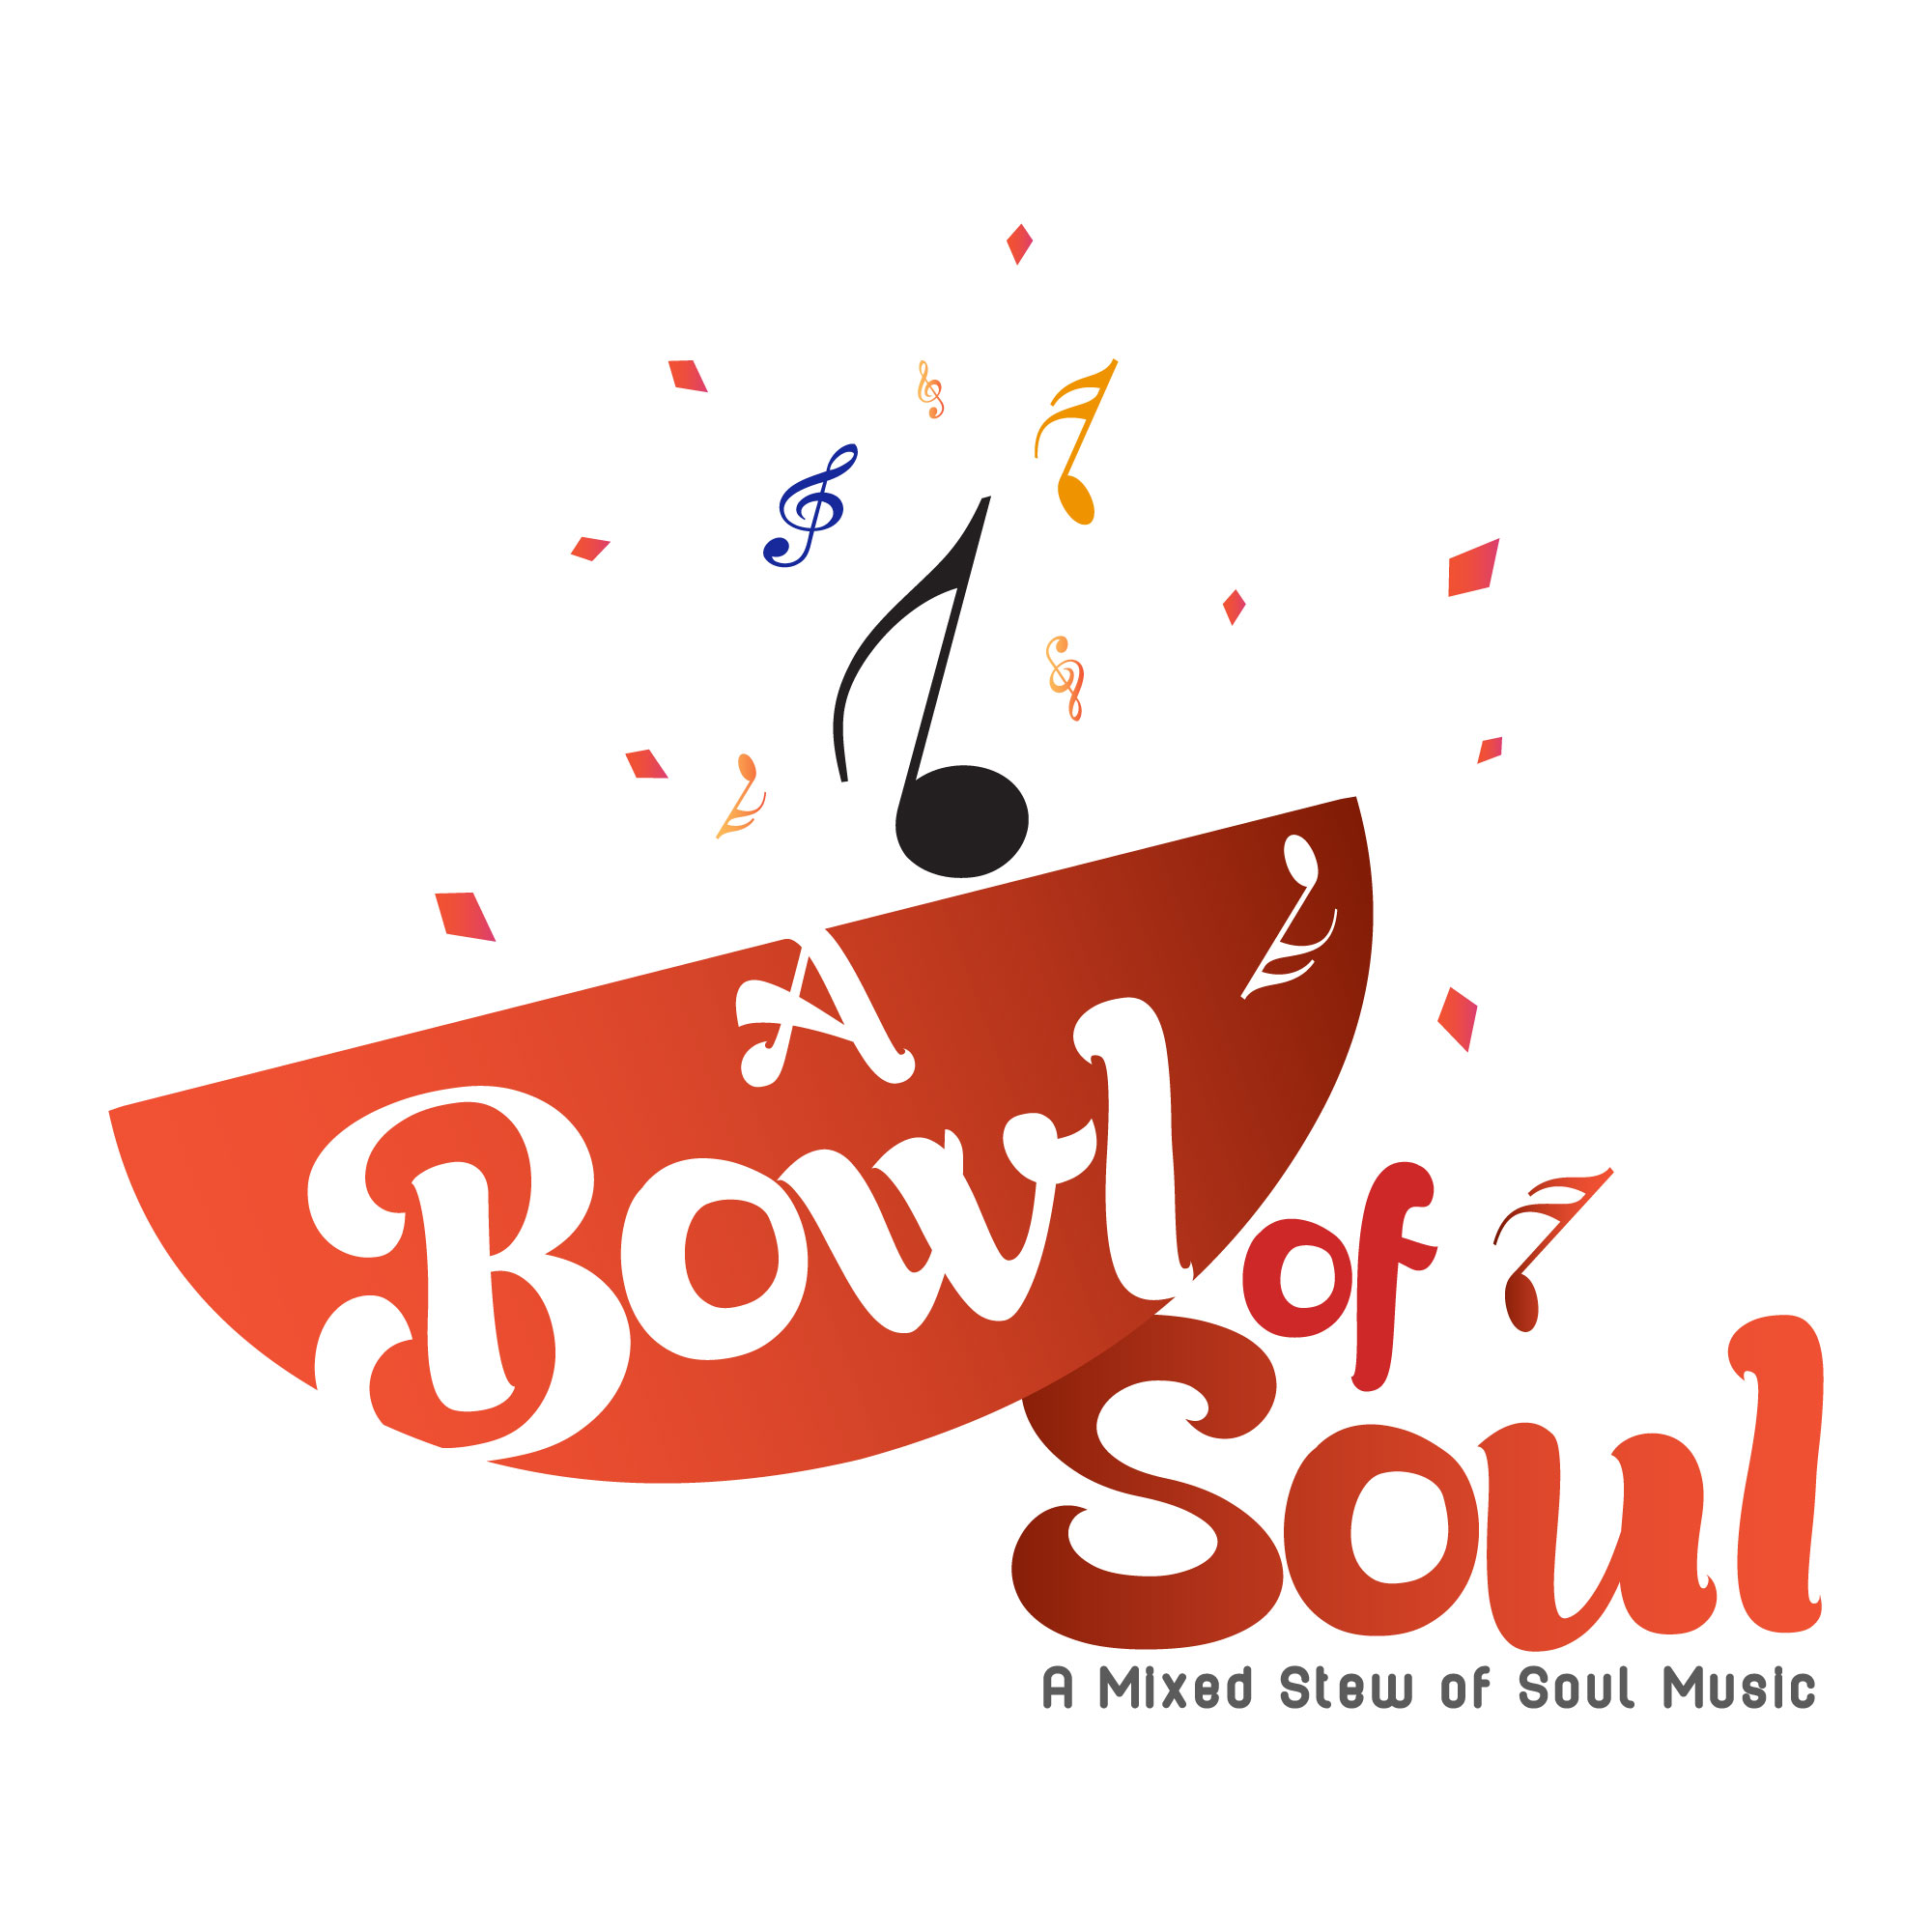 A Bowl of Soul A Mixed Stew of Soul Music Broadcast - 01-15-2021 - A Bowl of Soul Celebrates New R&B Music for 2021 show art